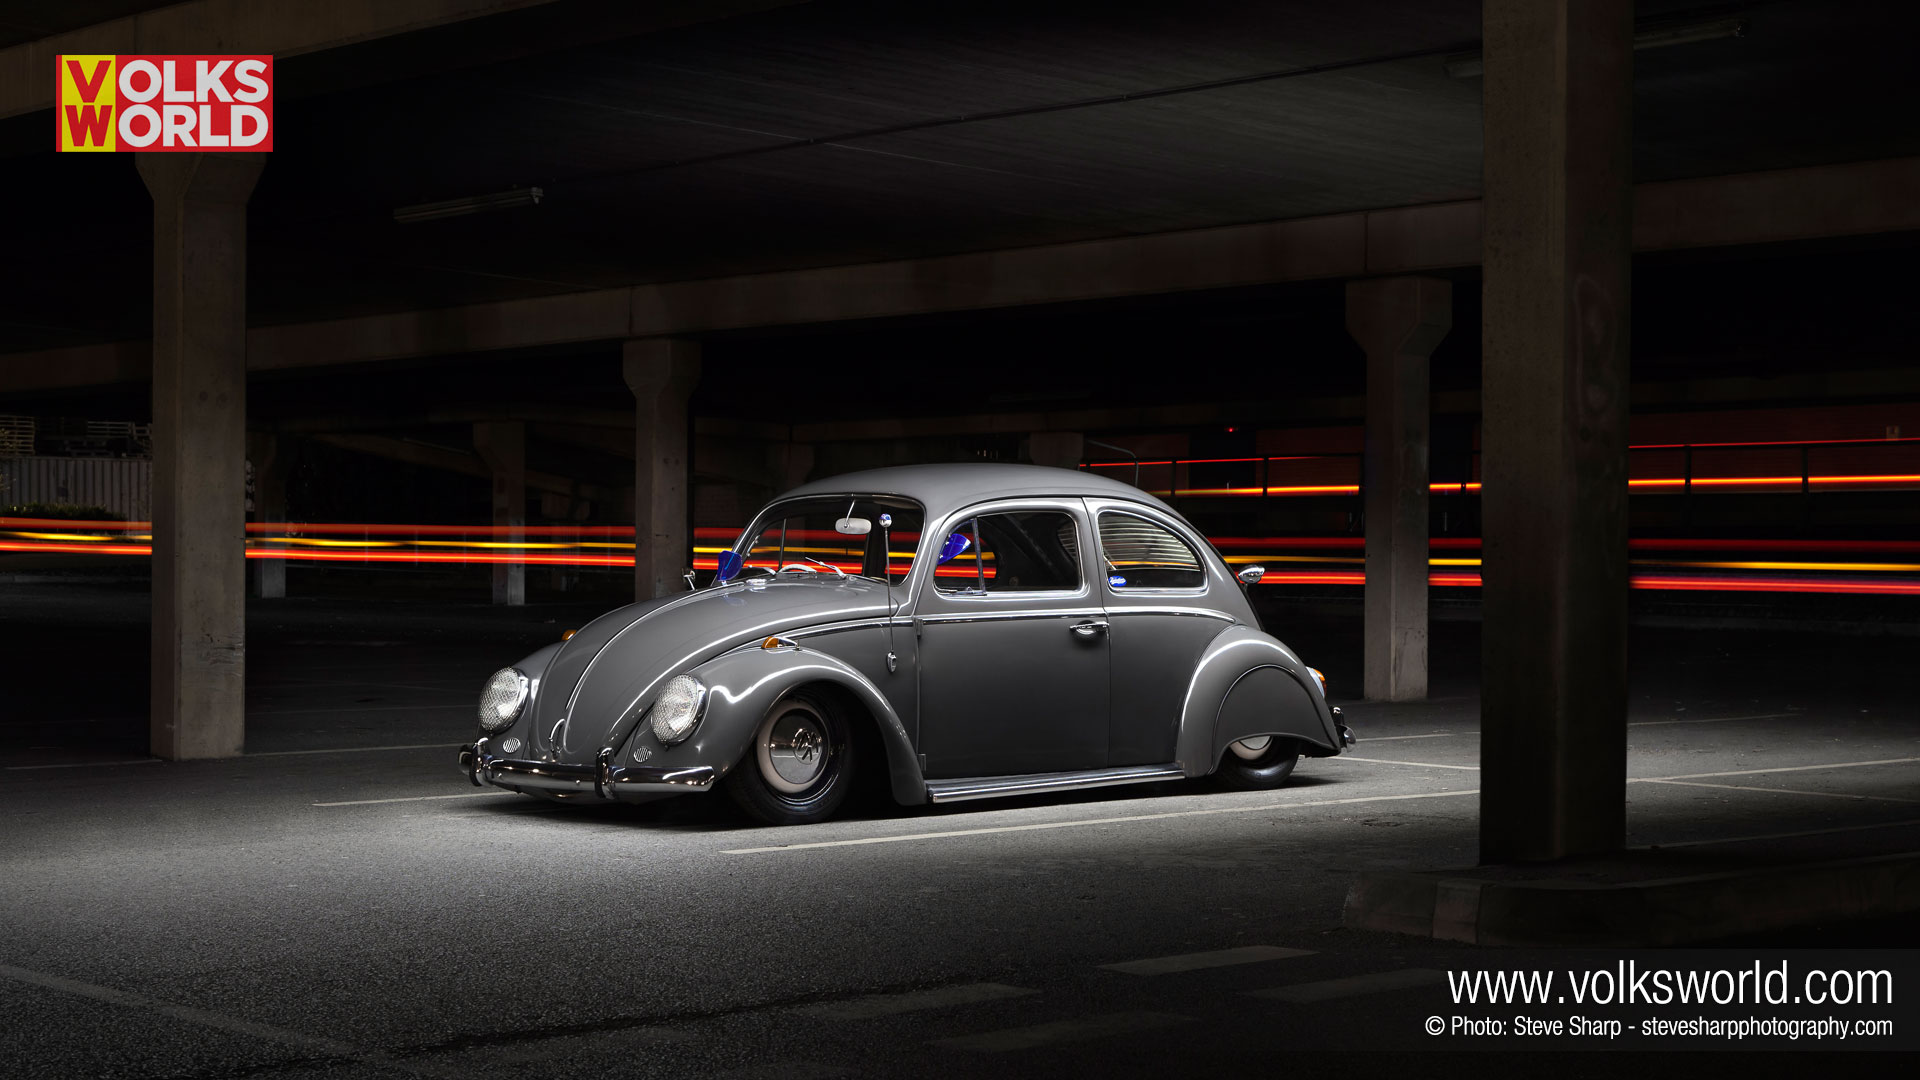 Best Wallpaper Gallery With Pc Wallpaper Volkswagen: VW Desktop Wallpaper